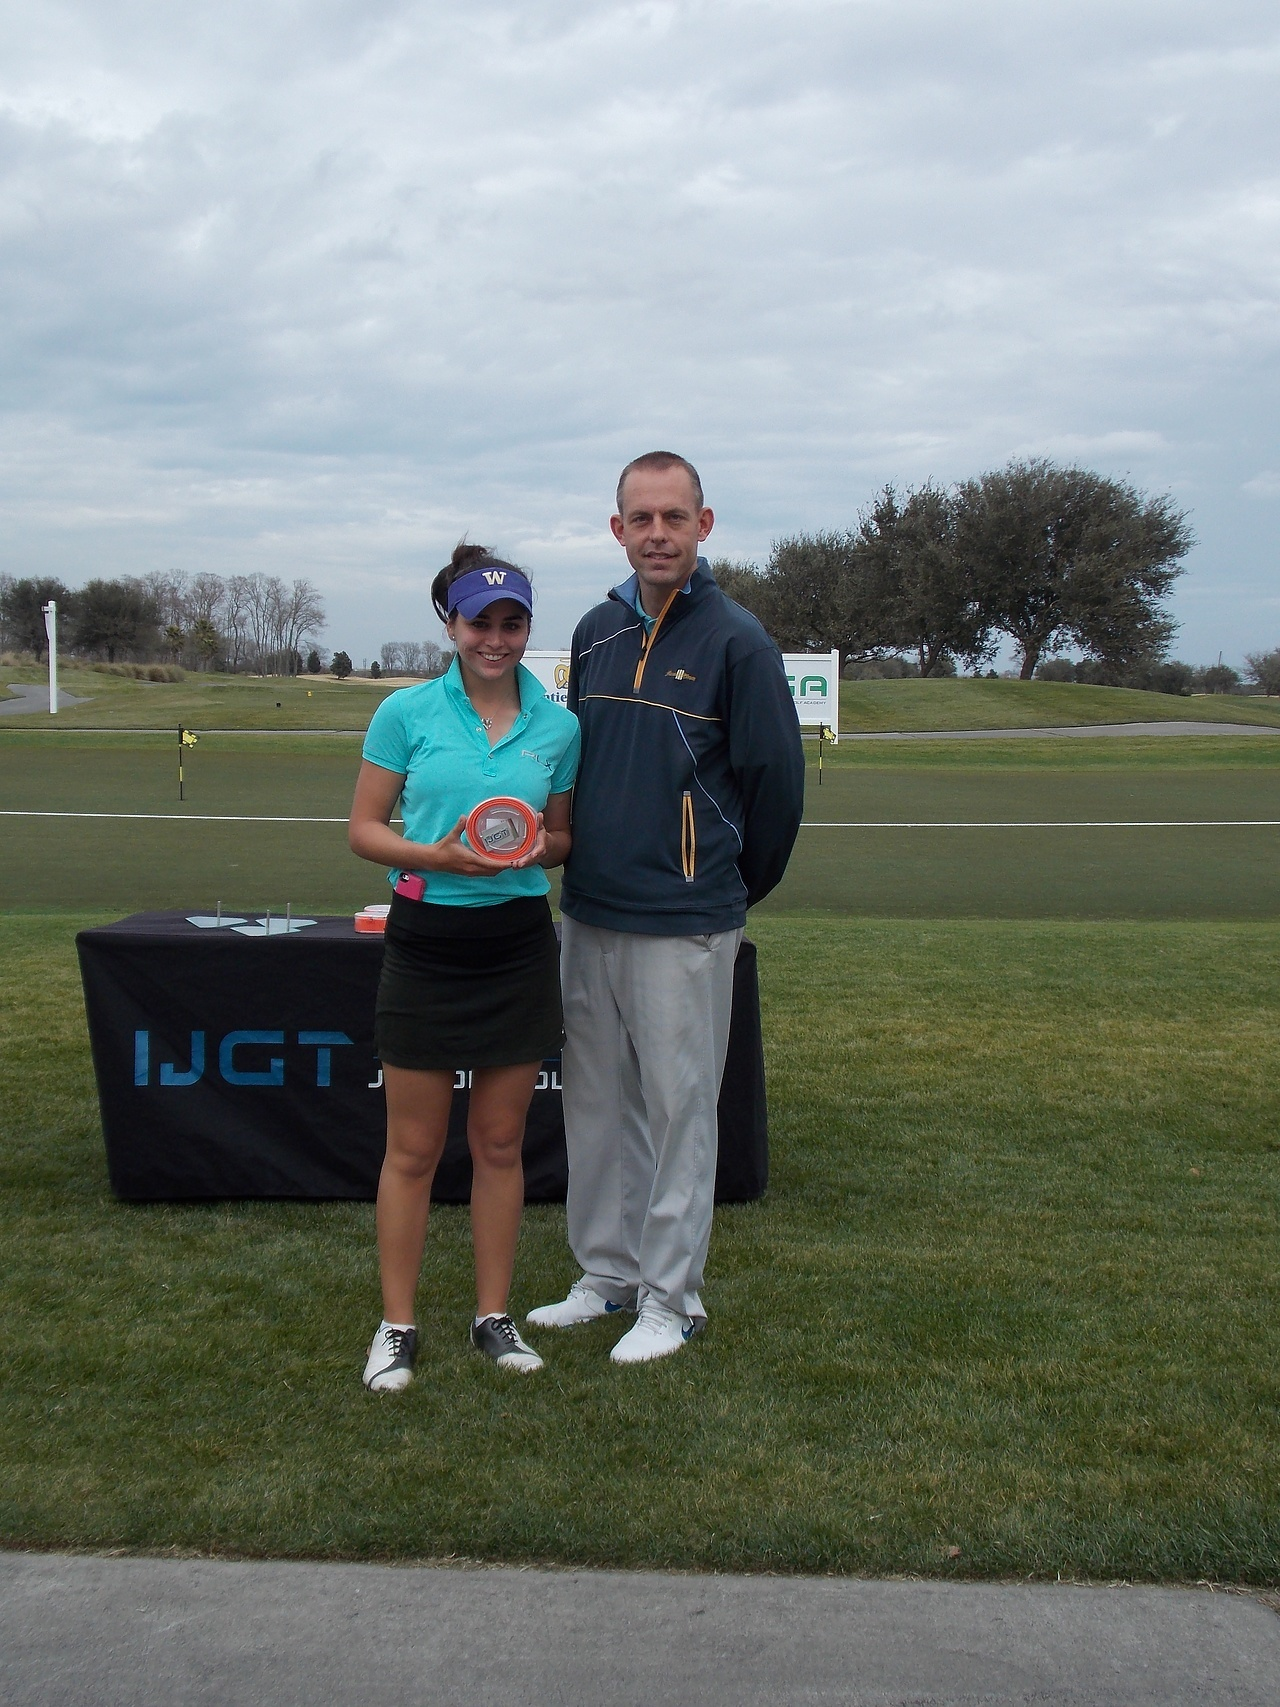 Rodriguez with her Clazic Belts Low Final Round Award at Georgia Junior at Savannah Harbor